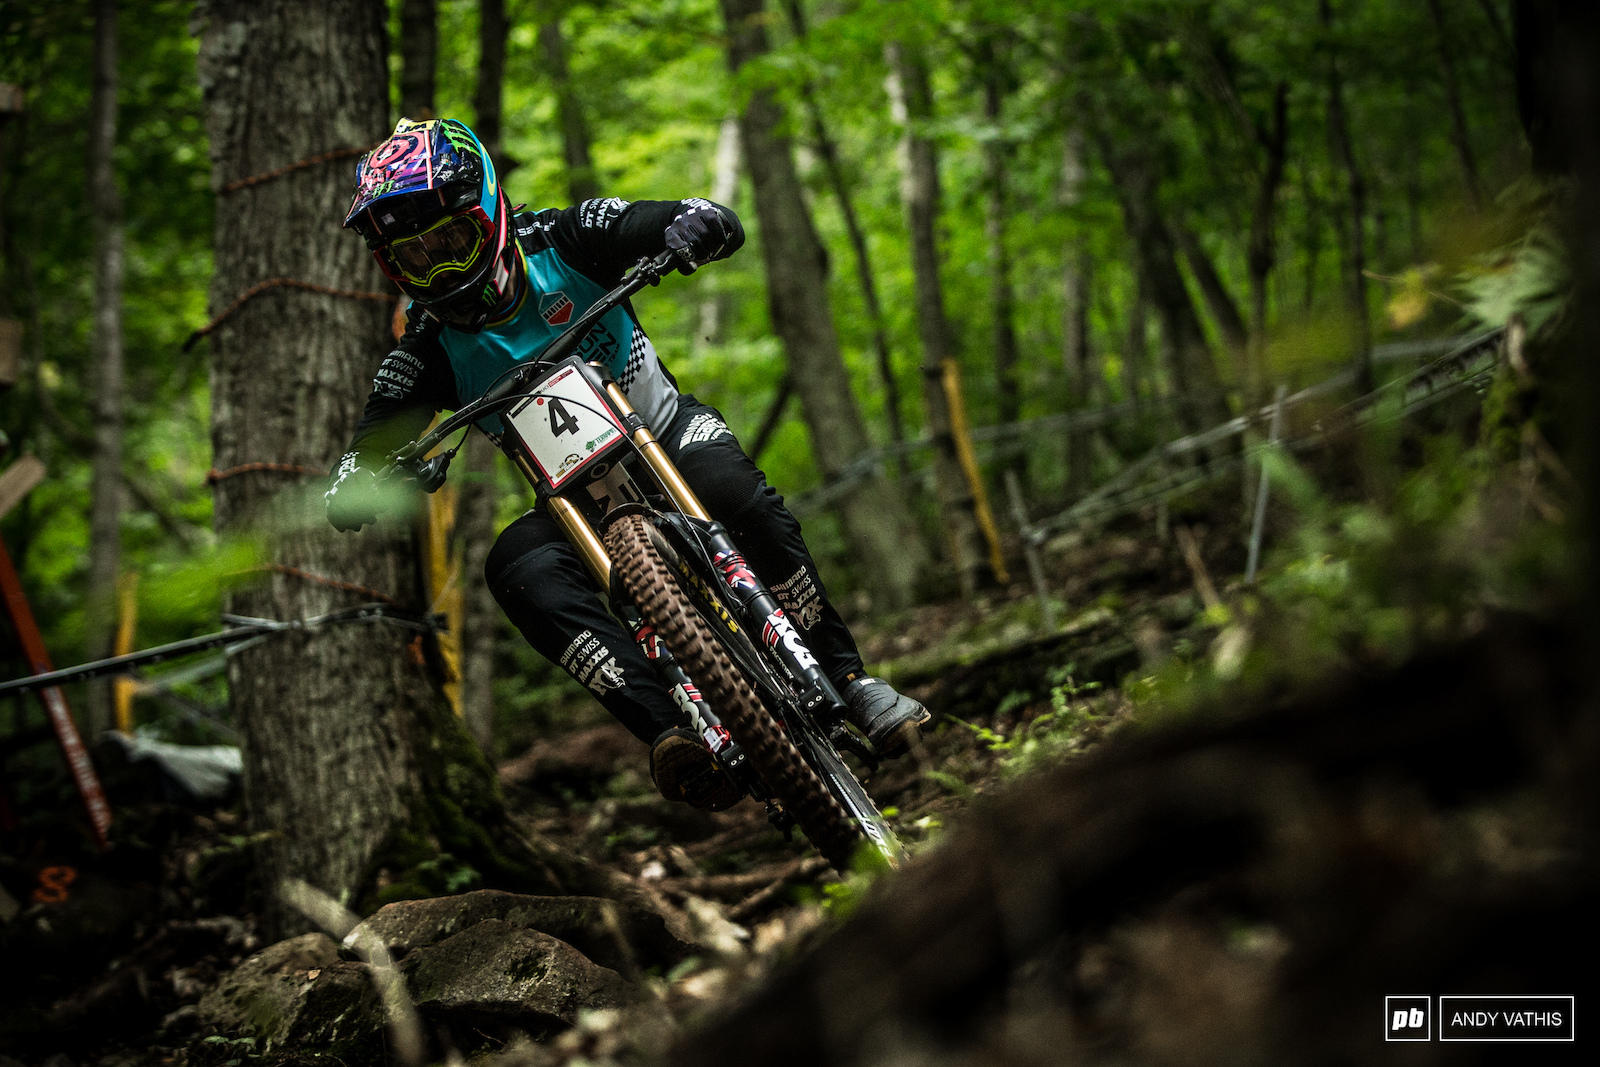 Danny Hart was skipping stones across the bottom of the course looking unbelievably fast at every turn.